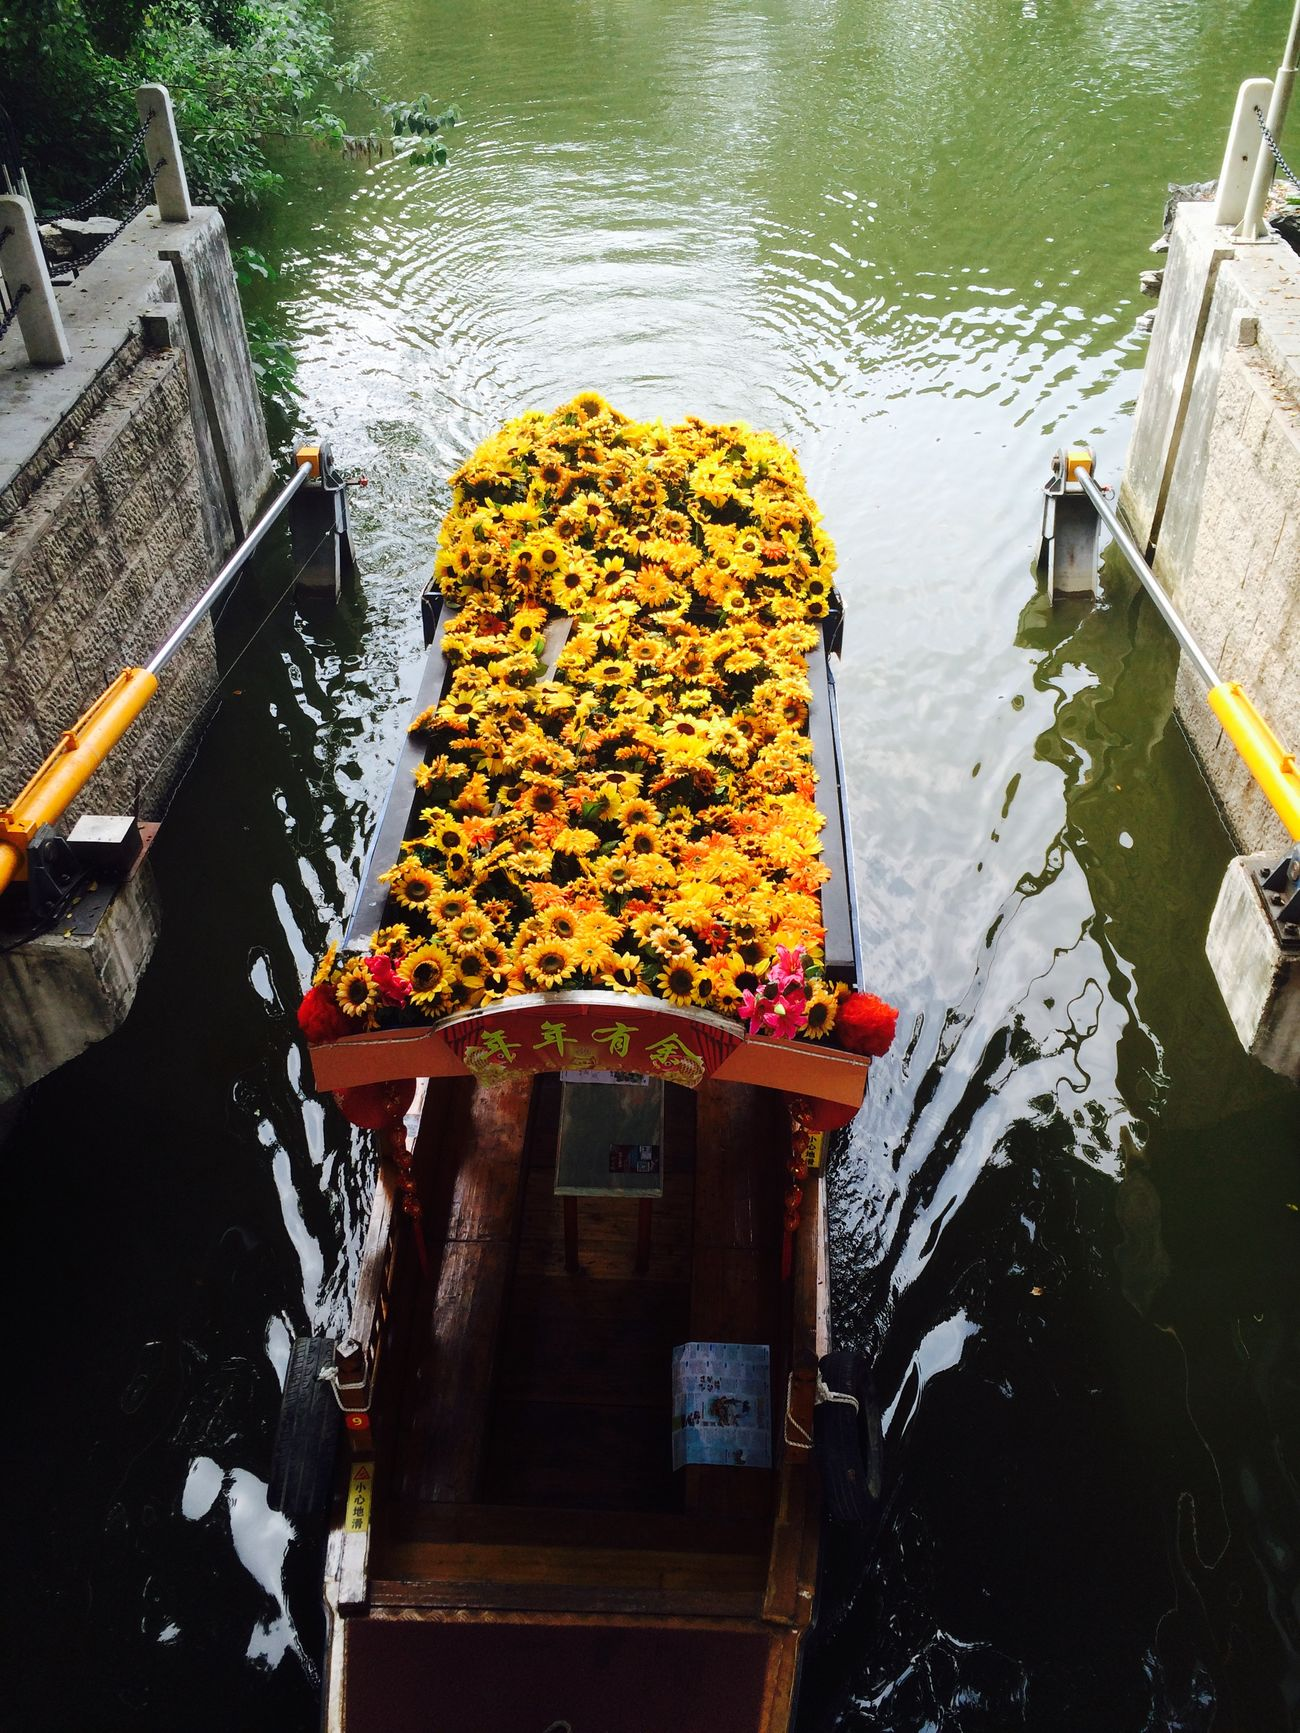 Flower boat at Liwan Lake, Yuexiu district, Guangzhou 1537 Guangzhou